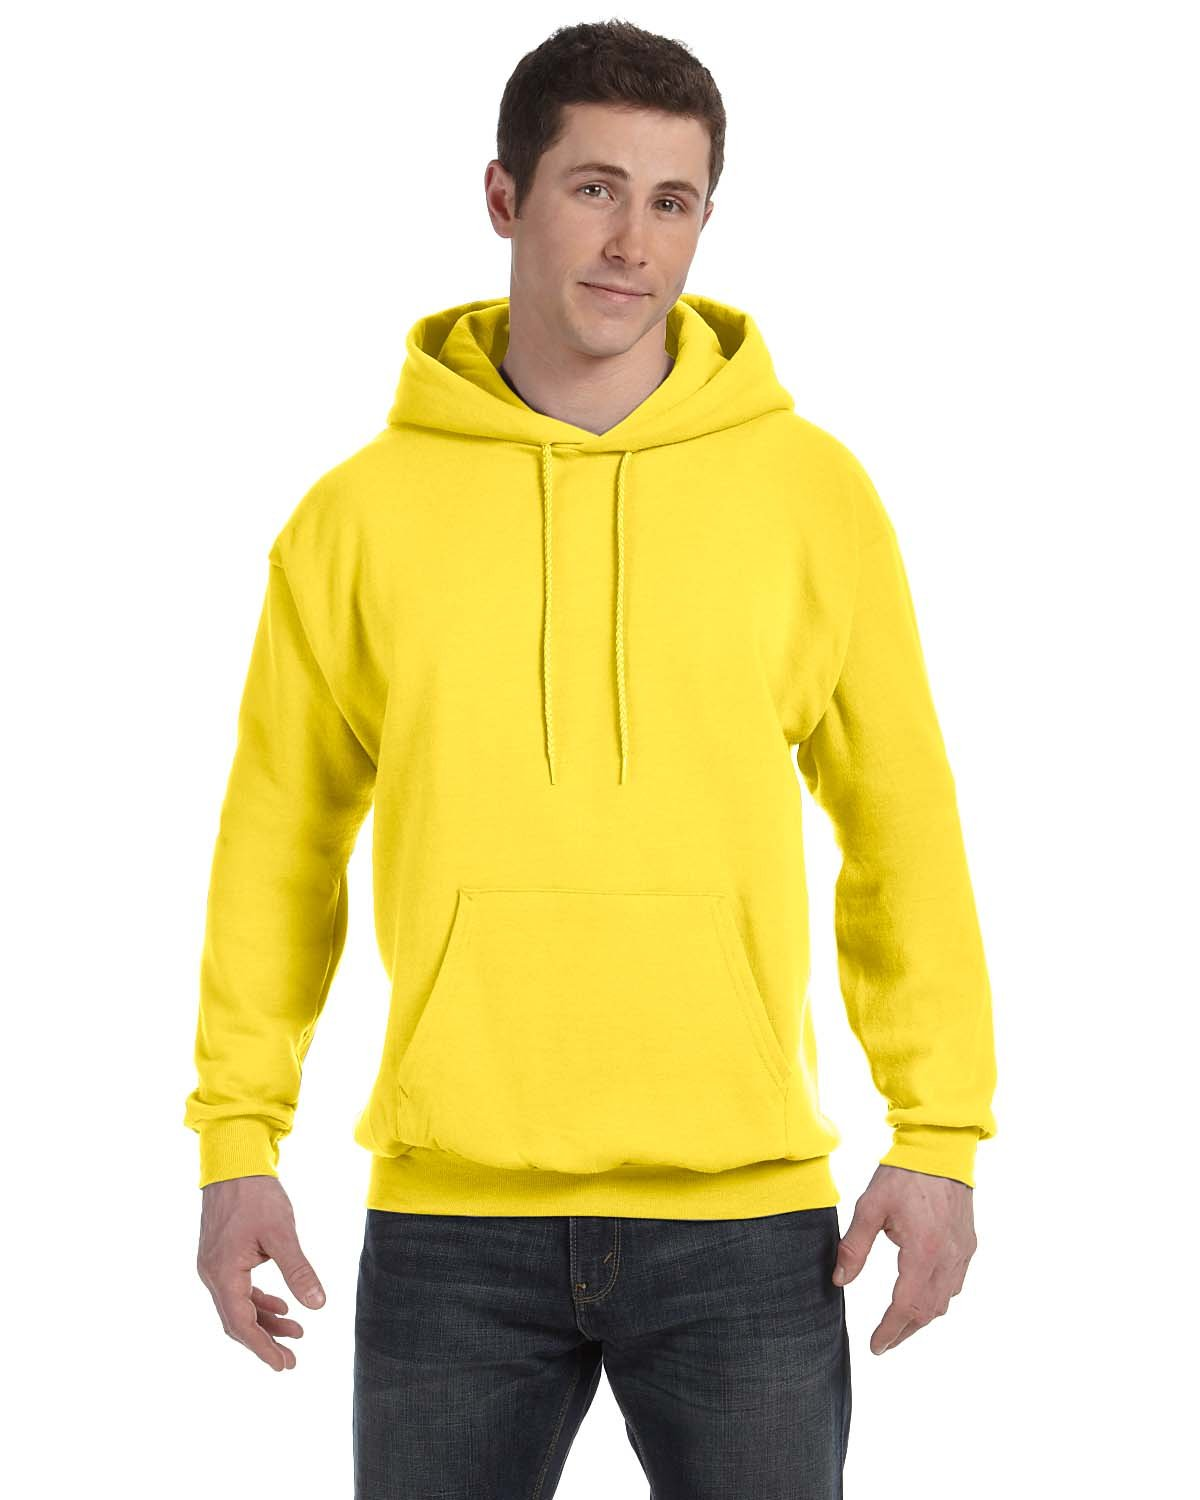 Hanes Unisex Ecosmart® 50/50 Pullover Hooded Sweatshirt YELLOW